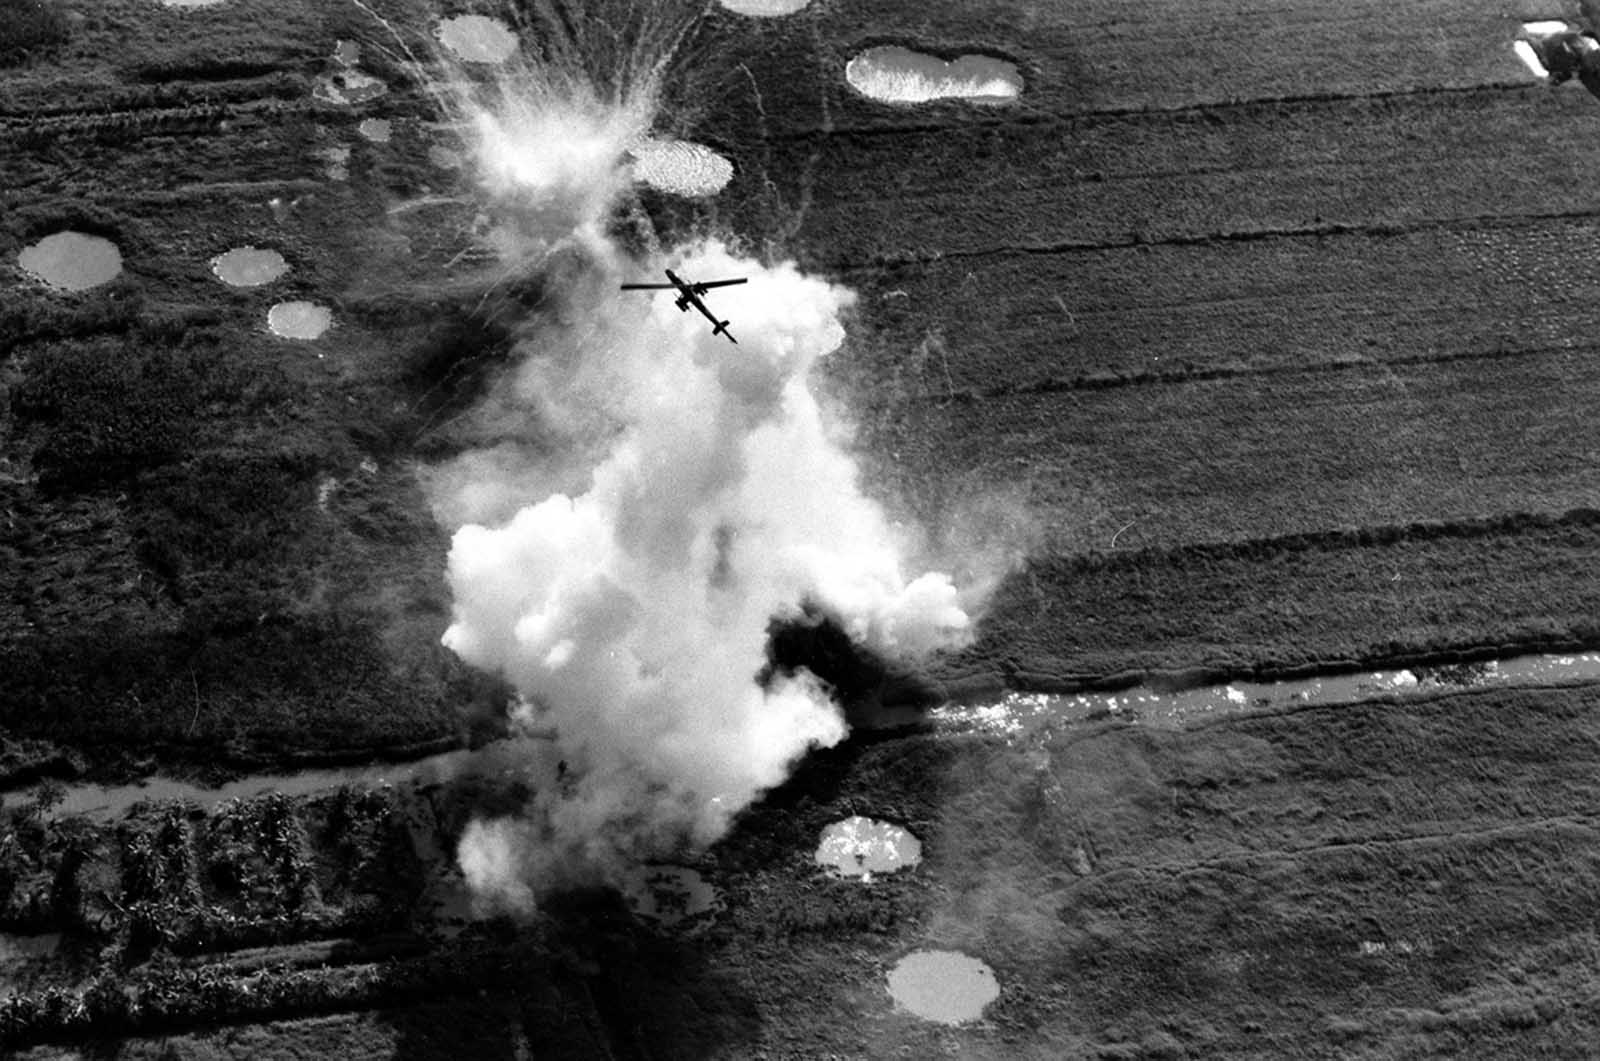 A Cobra helicopter gunship pulls out of a rocket and strafing attack on a Viet Cong position near Cao Lanh in the Mekong Delta on January 22, 1969. Large craters caused by air and artillery strikes brought in on the area can be seen near the white explosion.